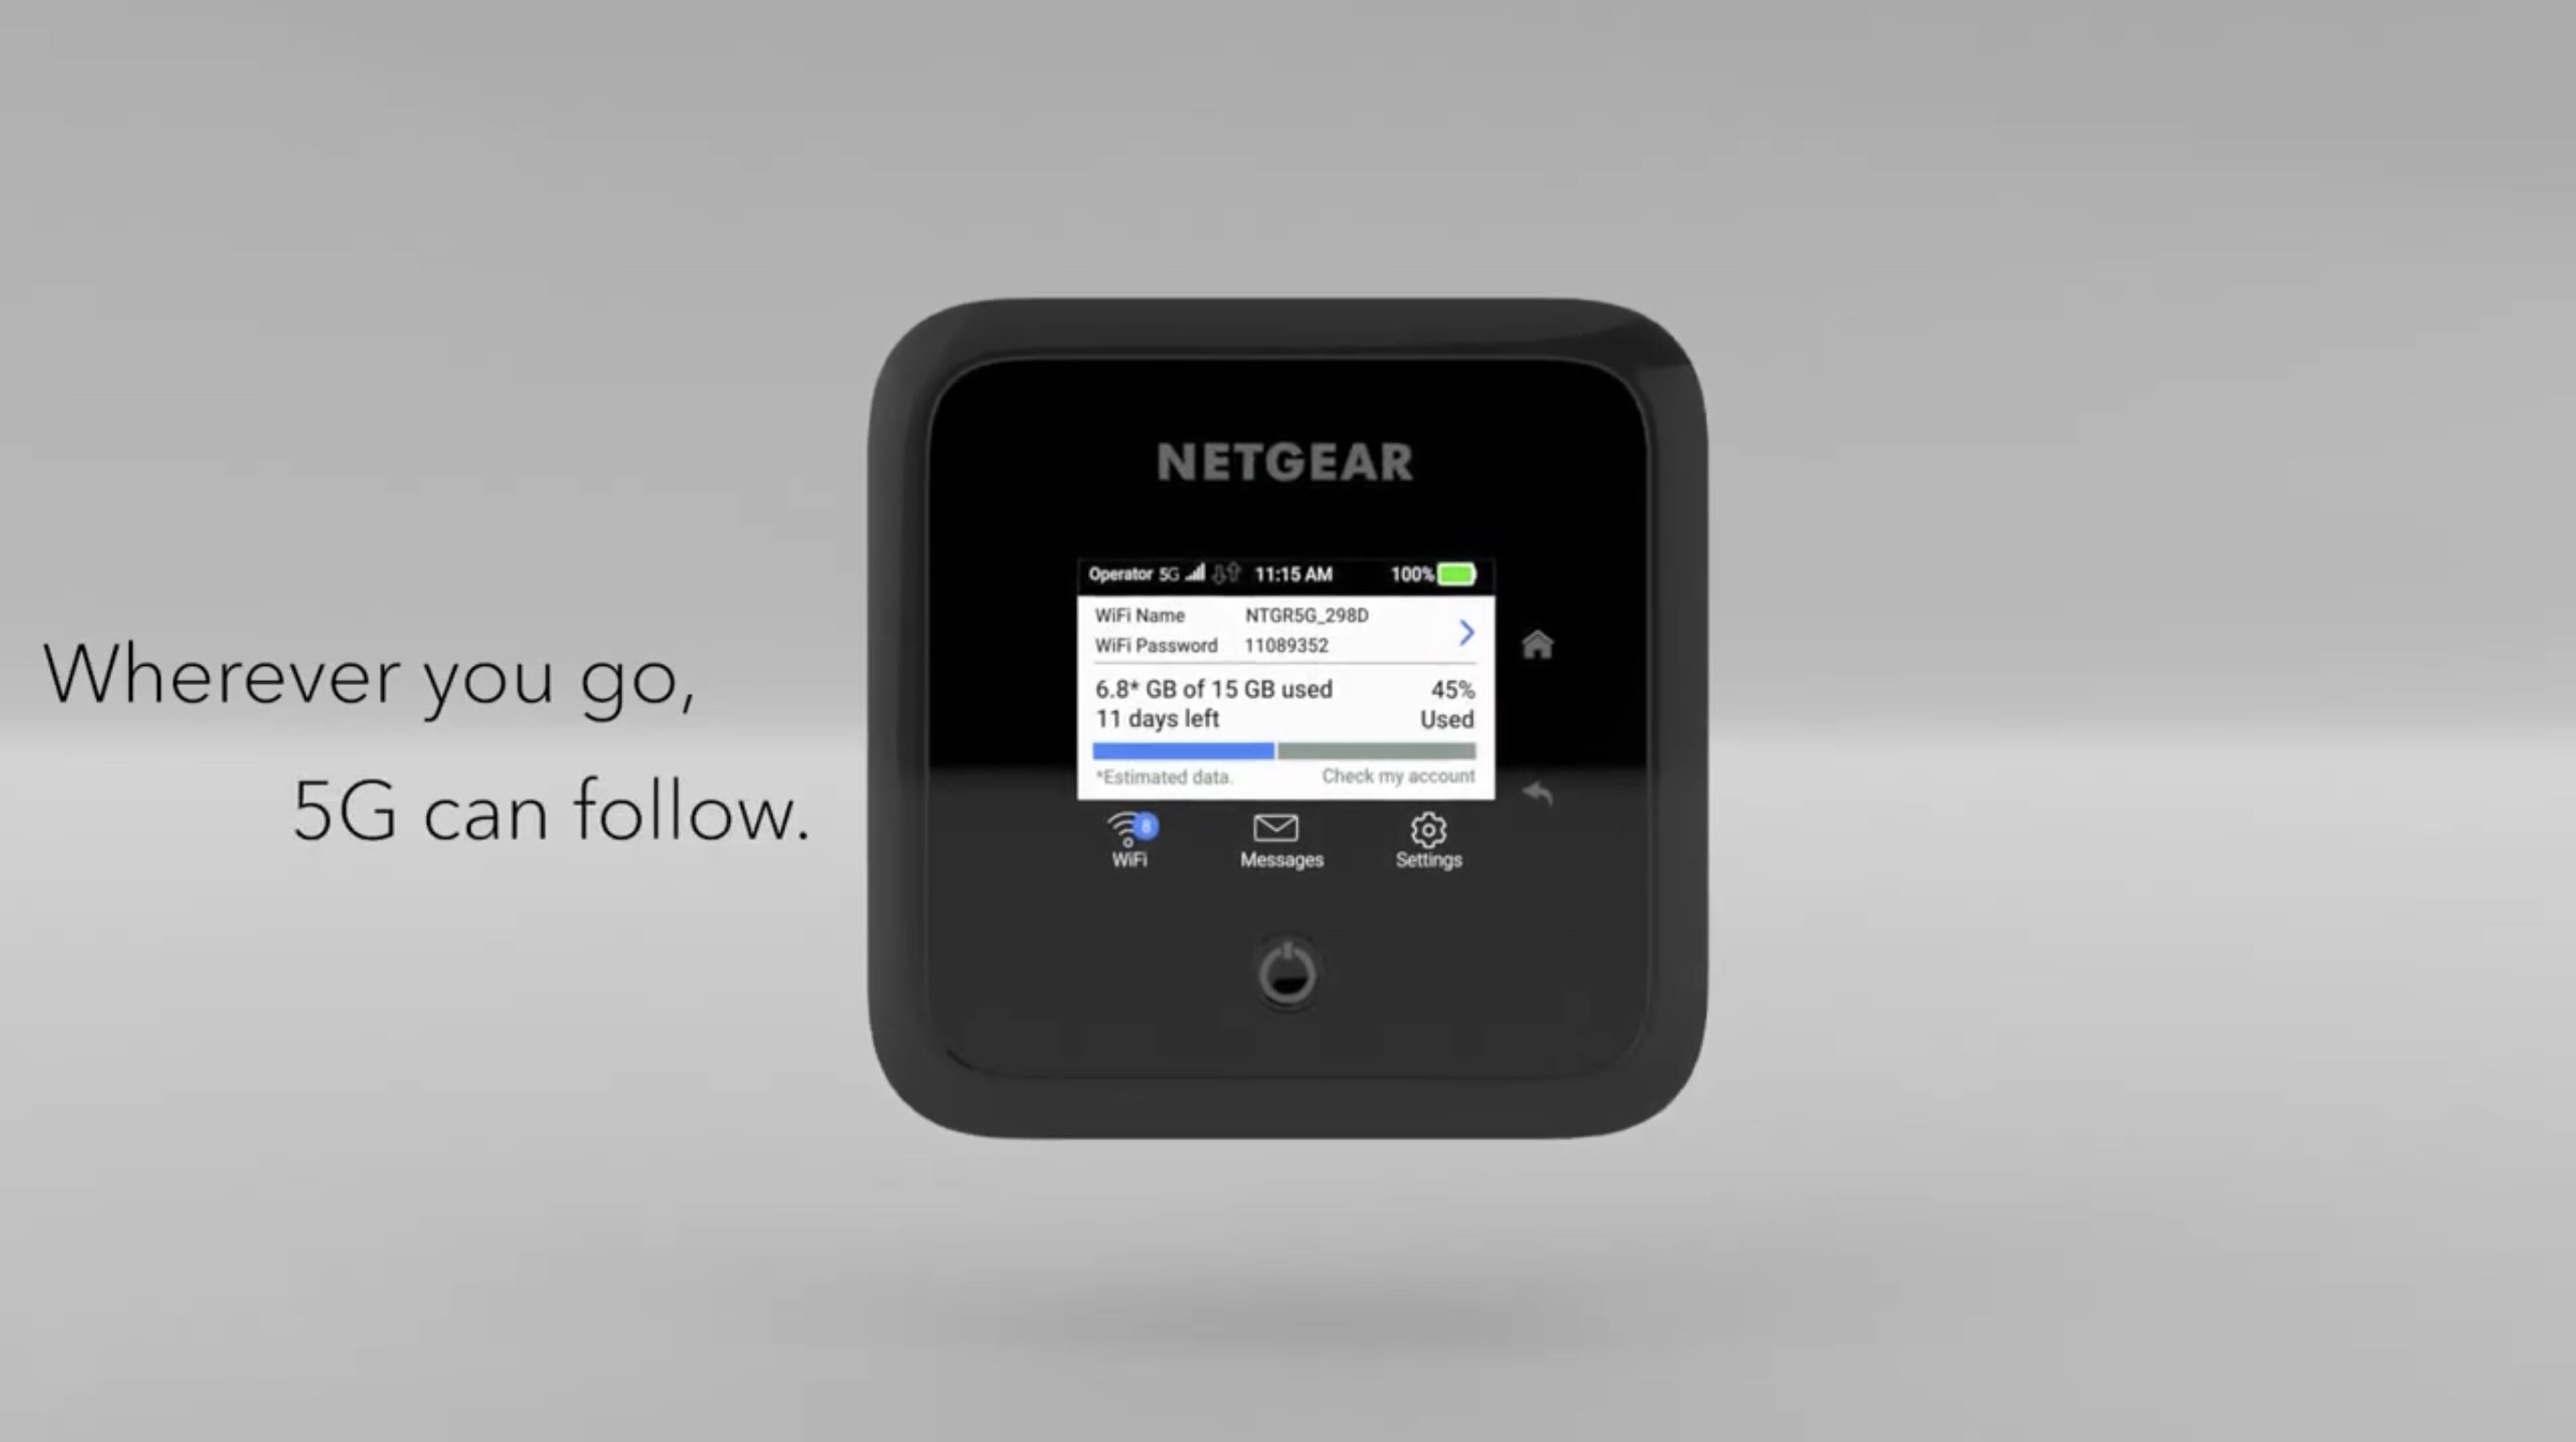 Source: Netgear